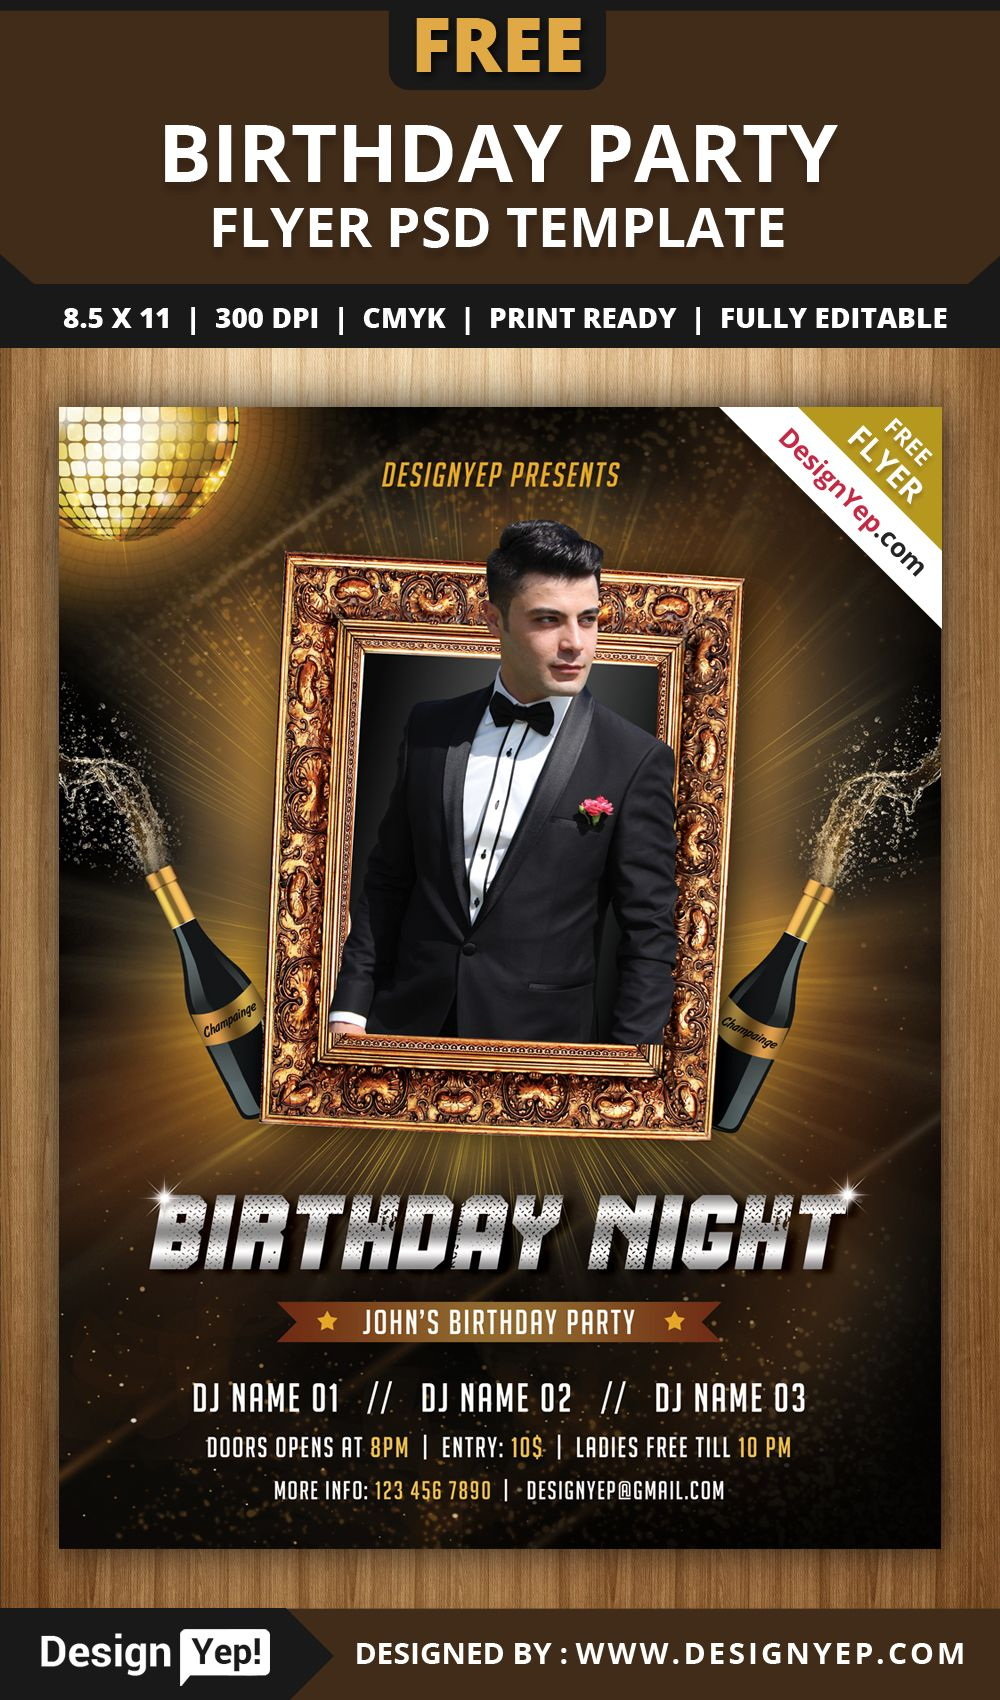 Free birthday flyer psd template 2616 designyep free flyers free birthday flyer psd template 2616 designyep maxwellsz